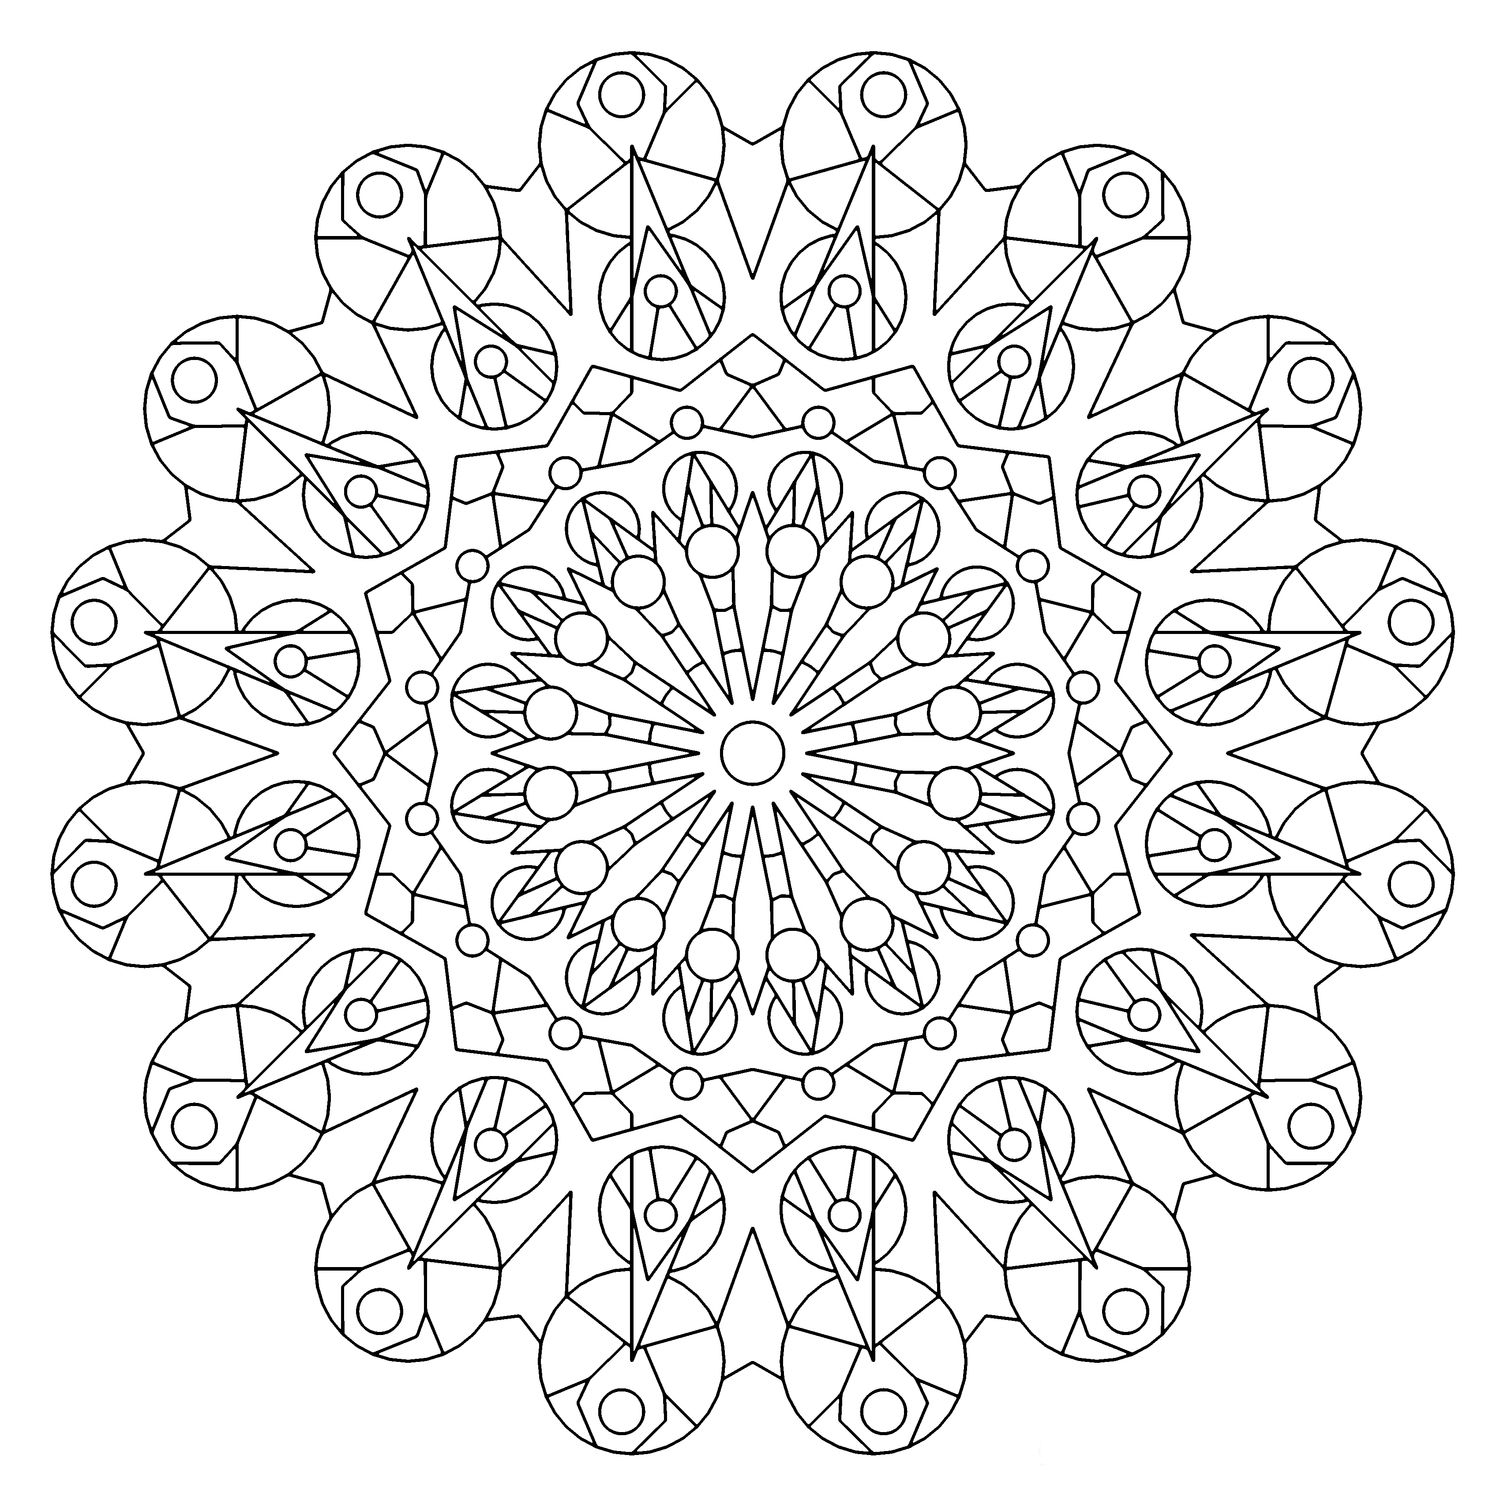 Kaleidoscope_geometry_coloring_pages.jpg